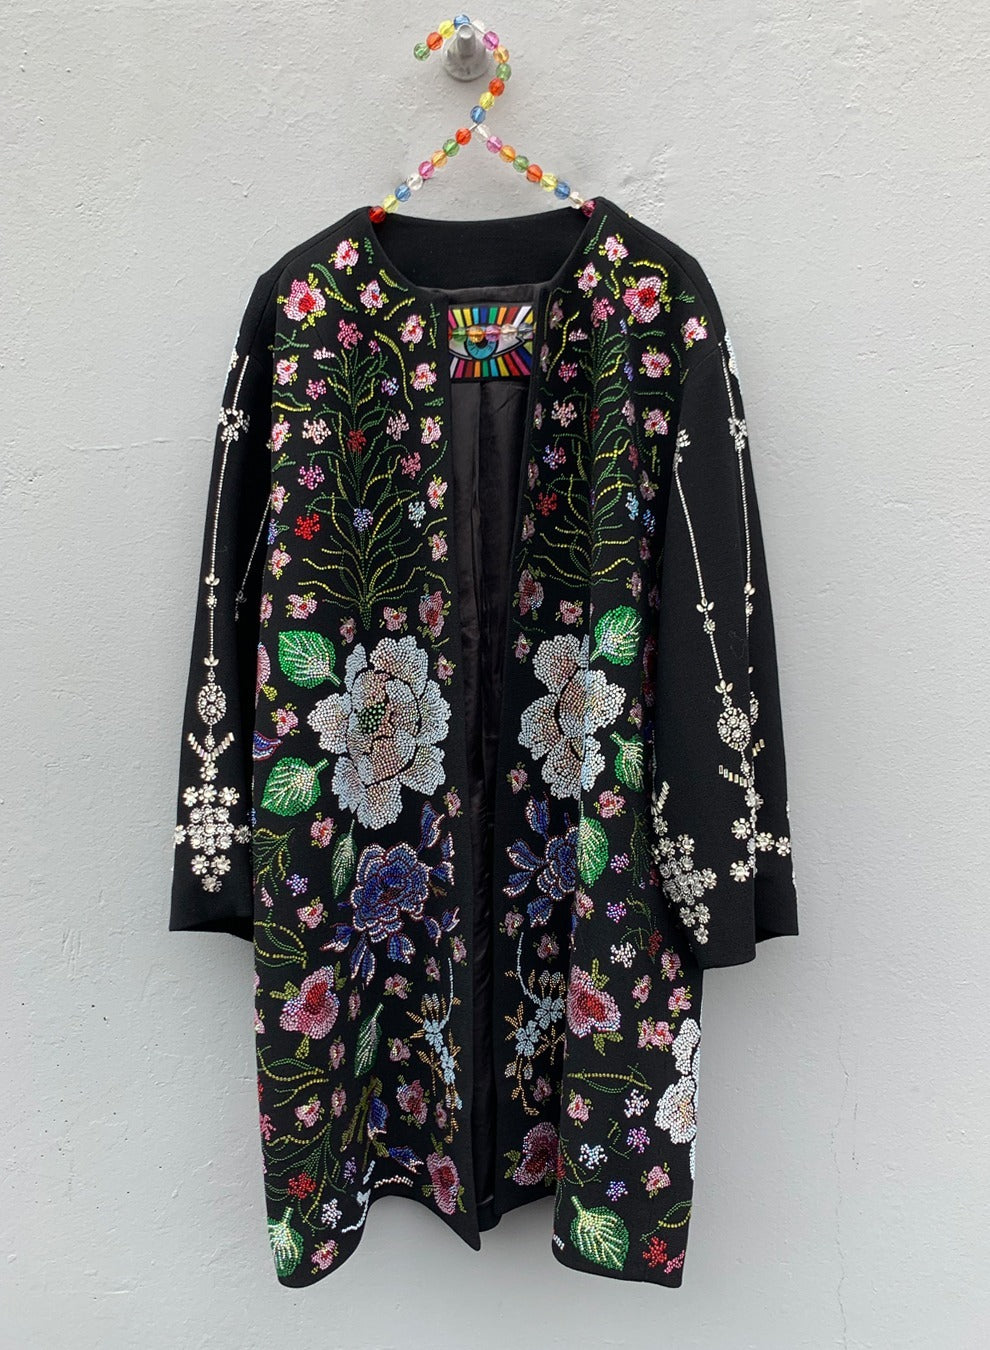 'LIBERTINE GARDEN' OPERA COAT - COATS - Libertine